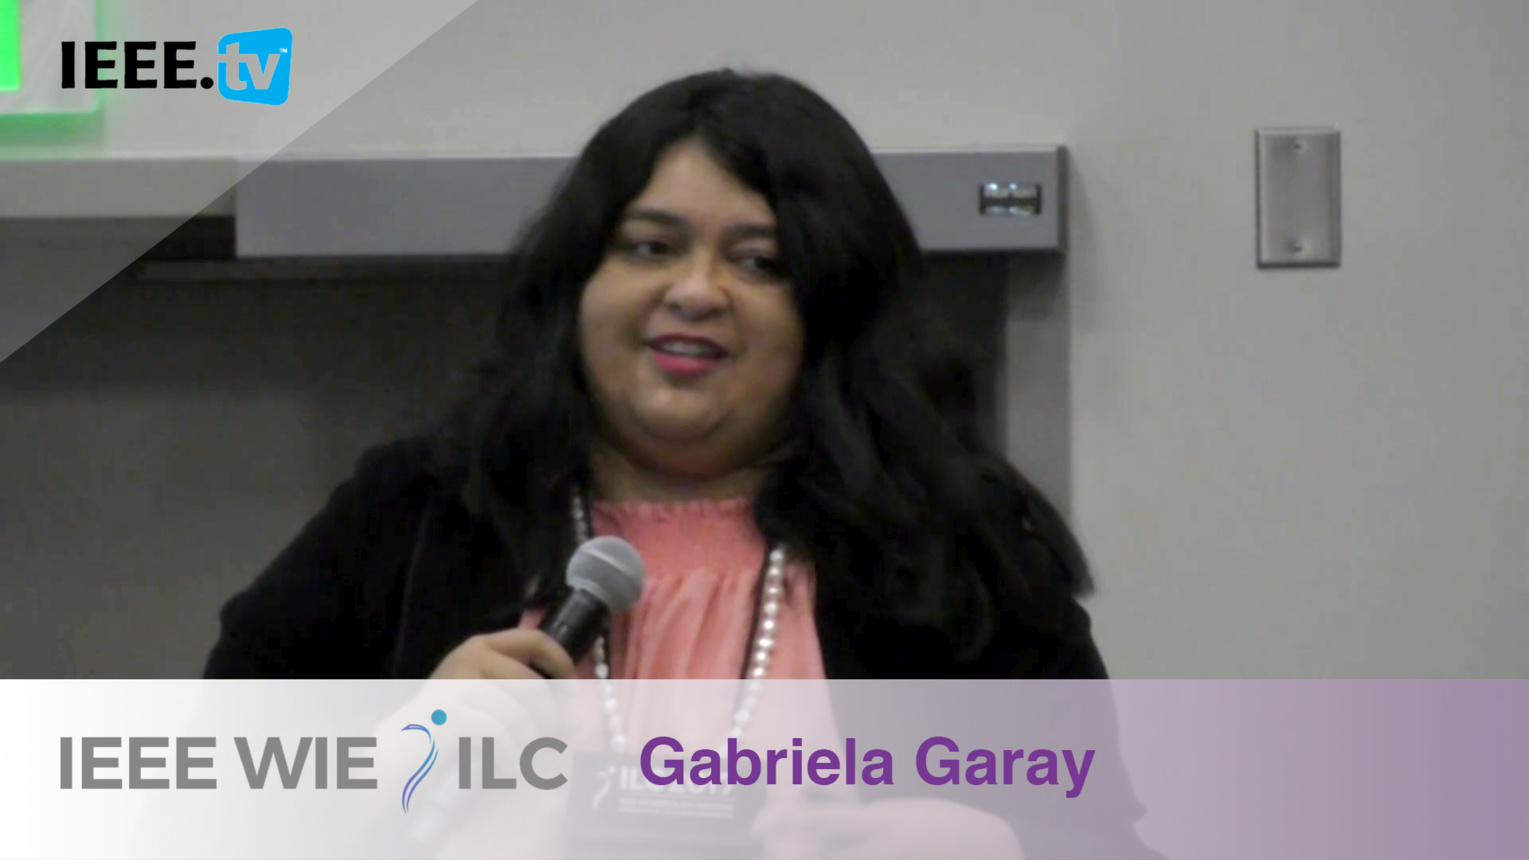 Gabriela Garay: Affinity Group of the Year Honorable Mention - IEEE WIE ILC Awards 2017